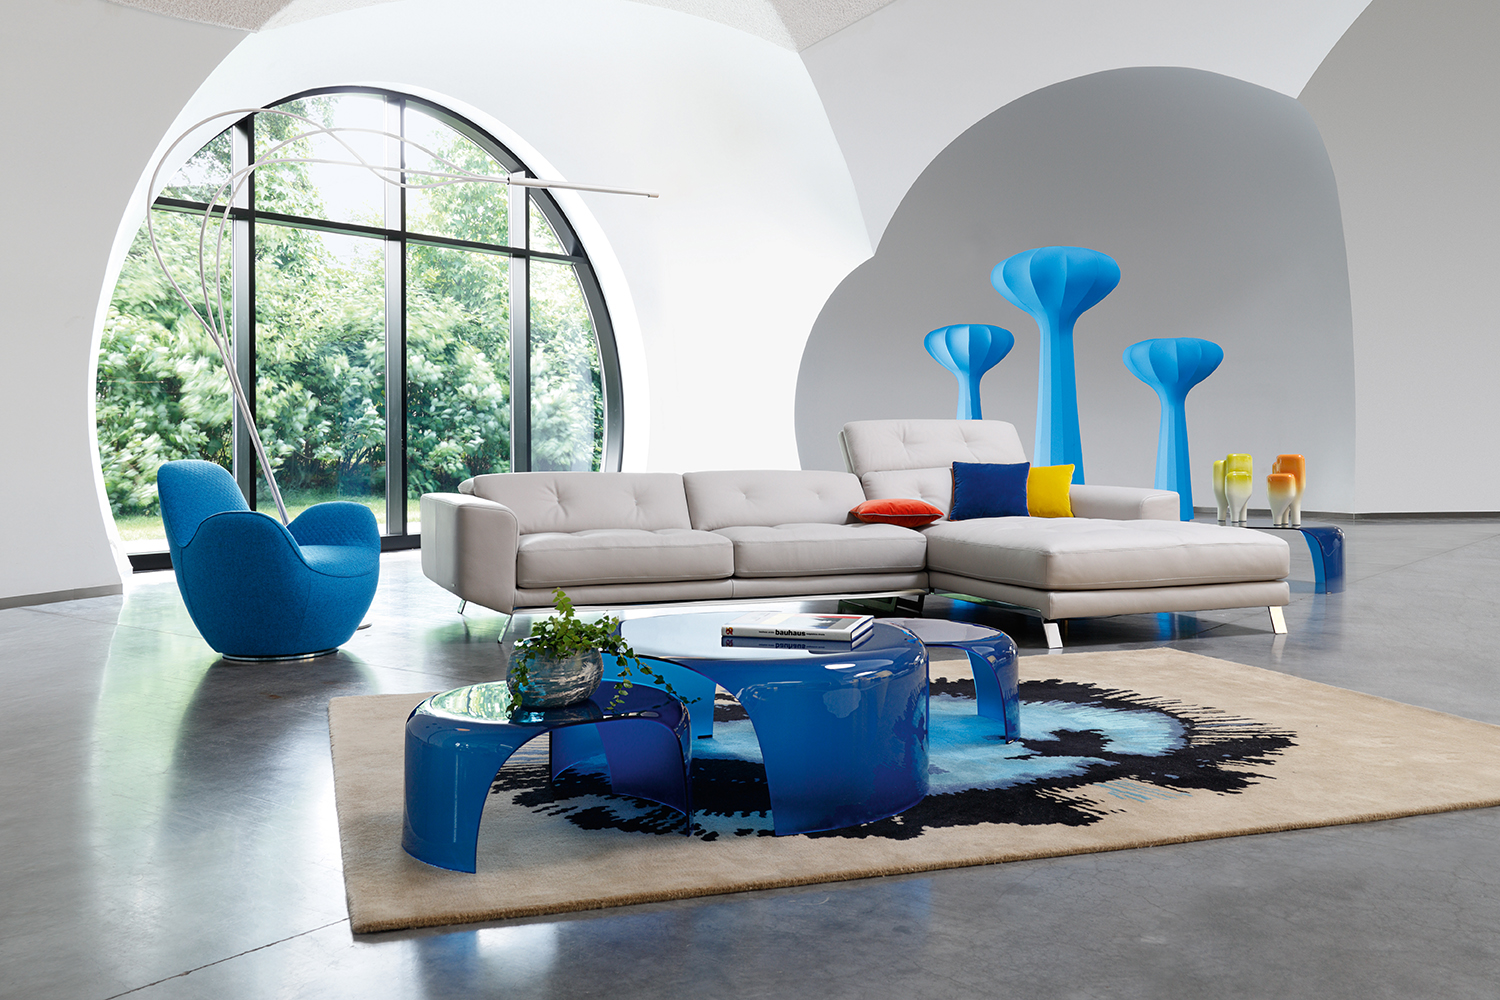 Bells on Roche Bobois Campaign